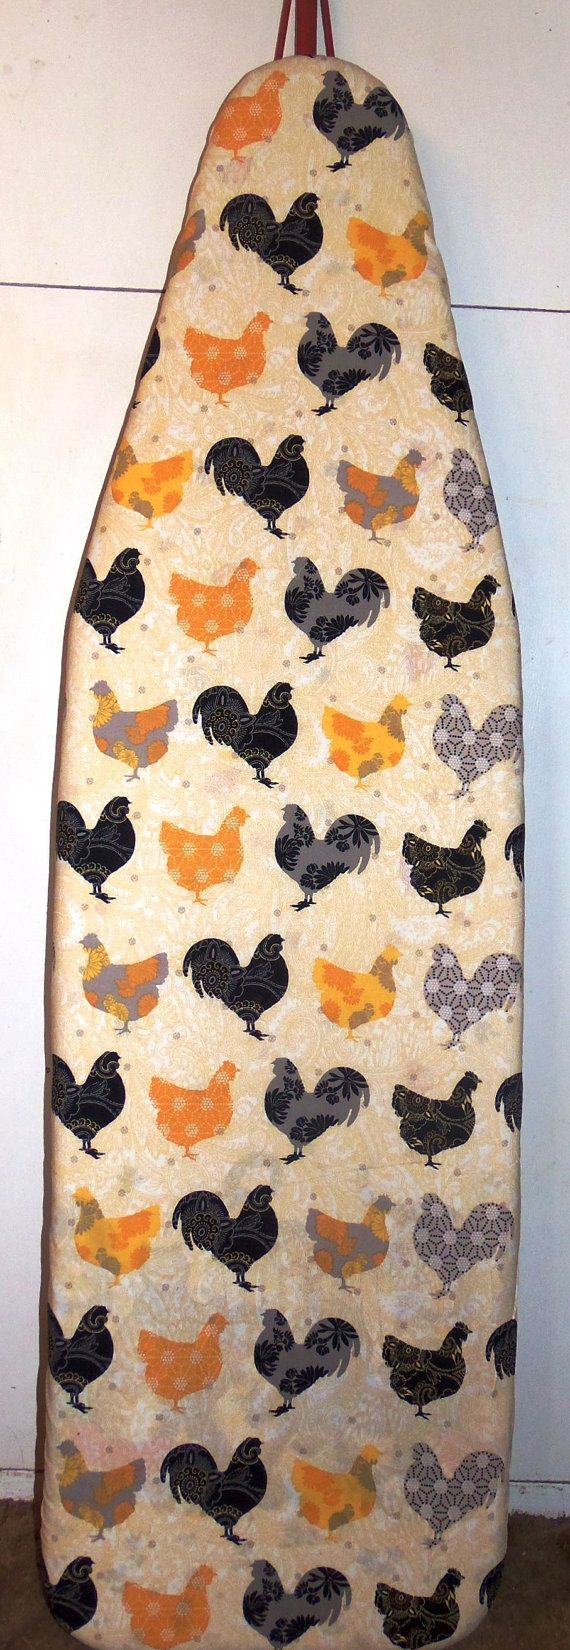 The Hens - Farmhouse Ironing board cover